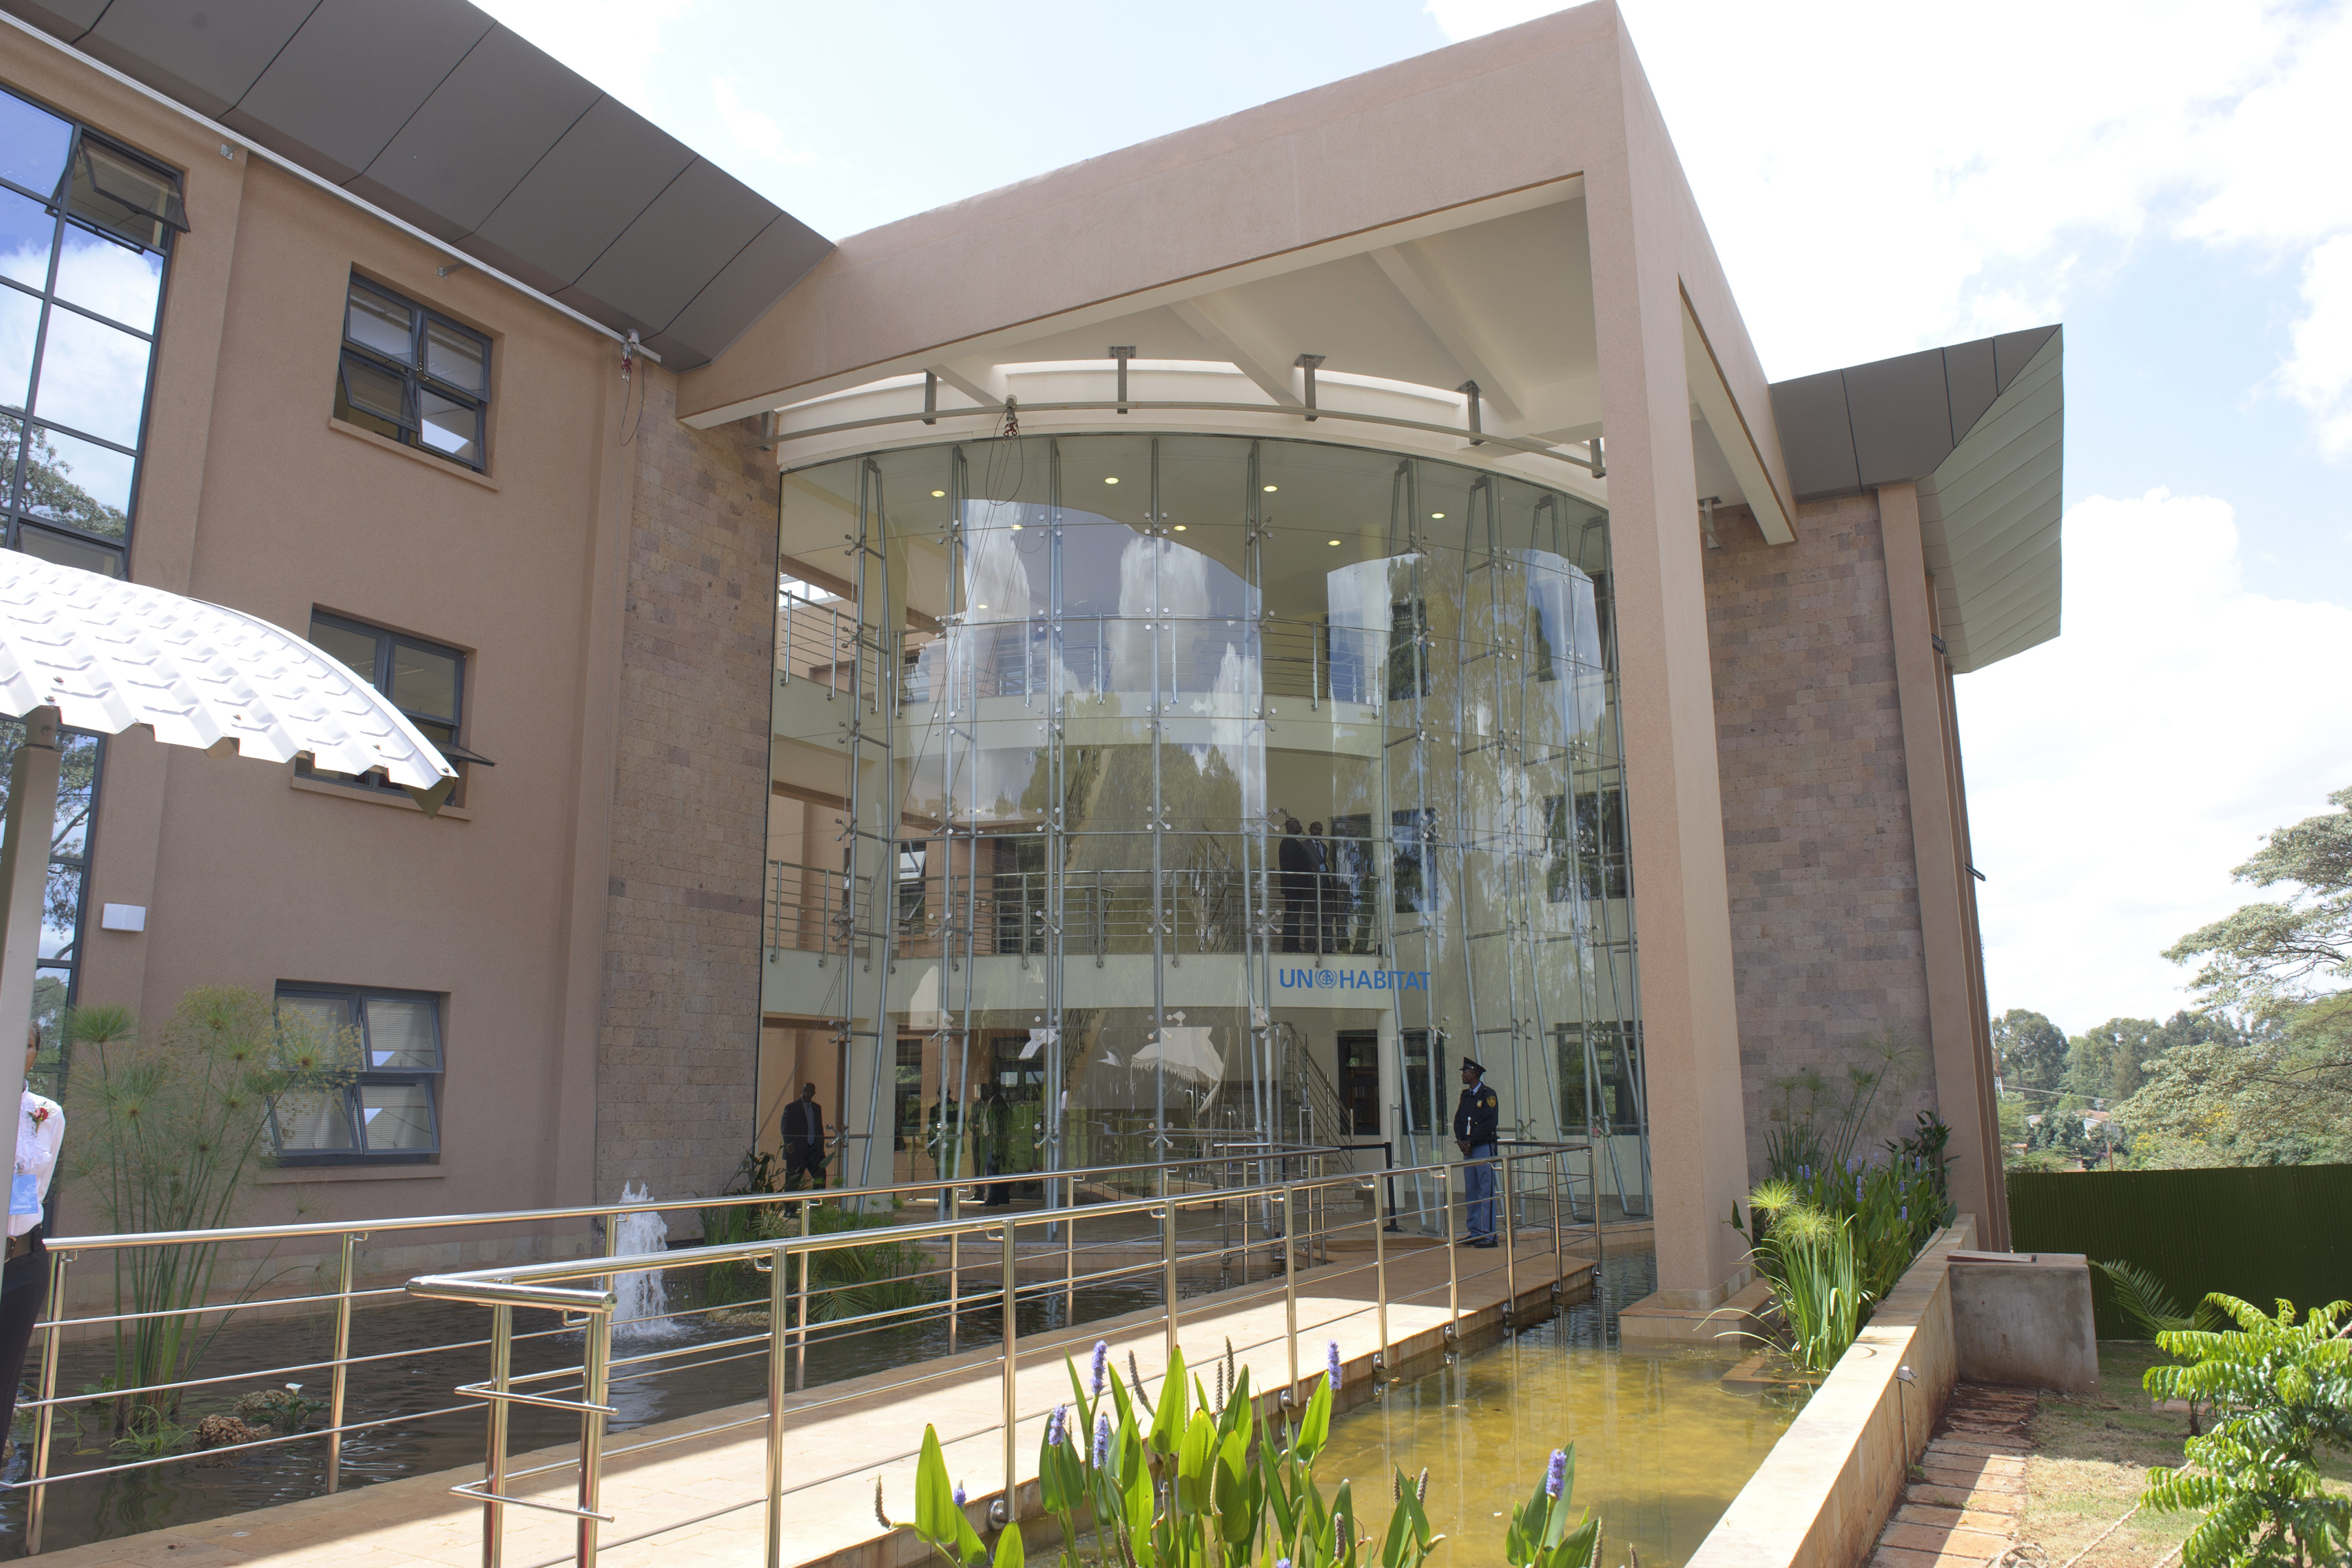 A view of the UN Office in Nairobi's new energy-efficient facilities, Kenya.